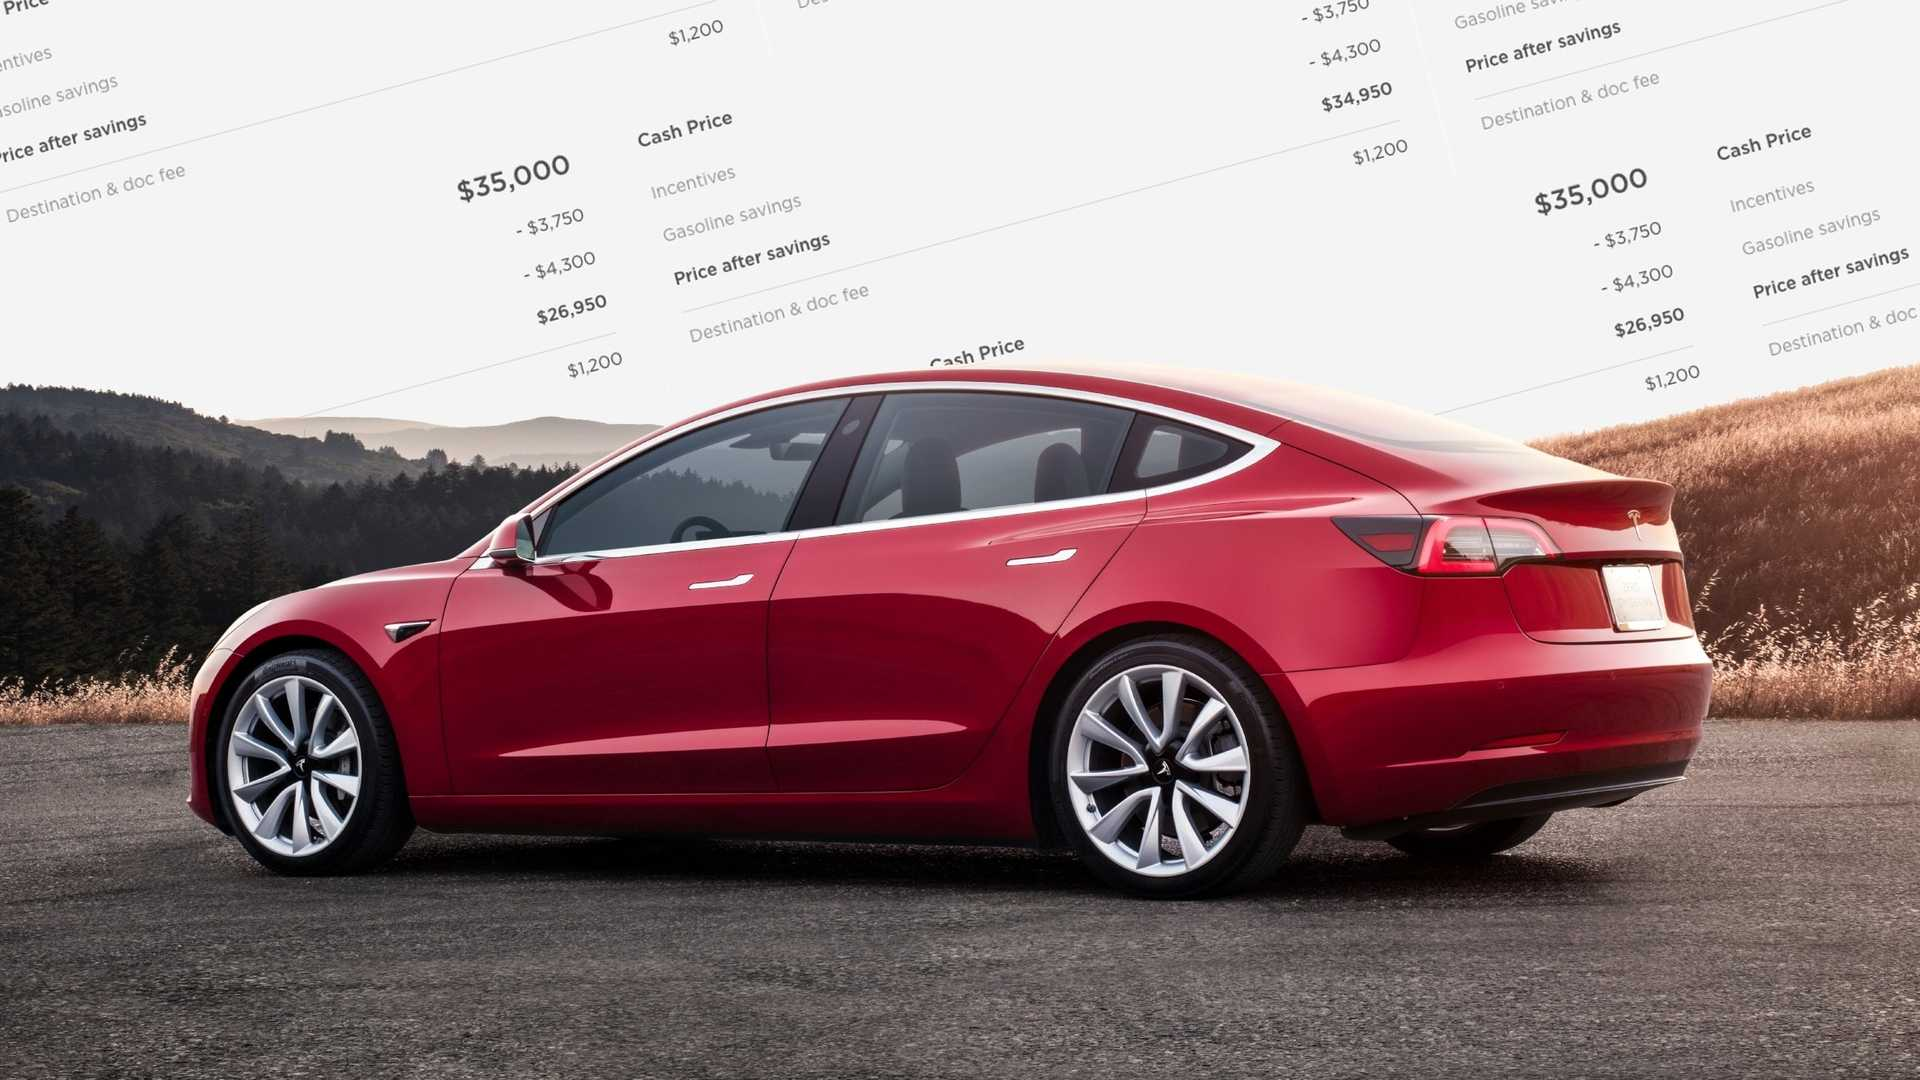 How Much Does A Tesla Actually Cost?